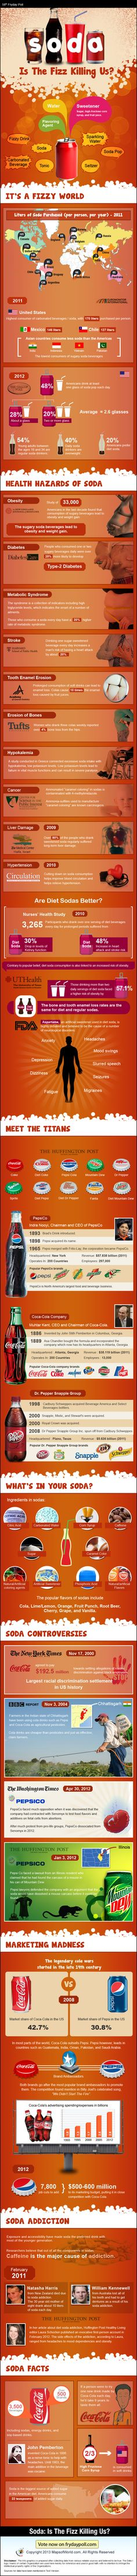 Find In-depth Review And Infographic About Soda And Its Health Hazards. Learn more about global (and US) soda pop consumption, about  corporations like PepsiCo, Coca Cola & Dr Pepper Snapple. Learn about soft drinks ingredients, controversies, marketing m